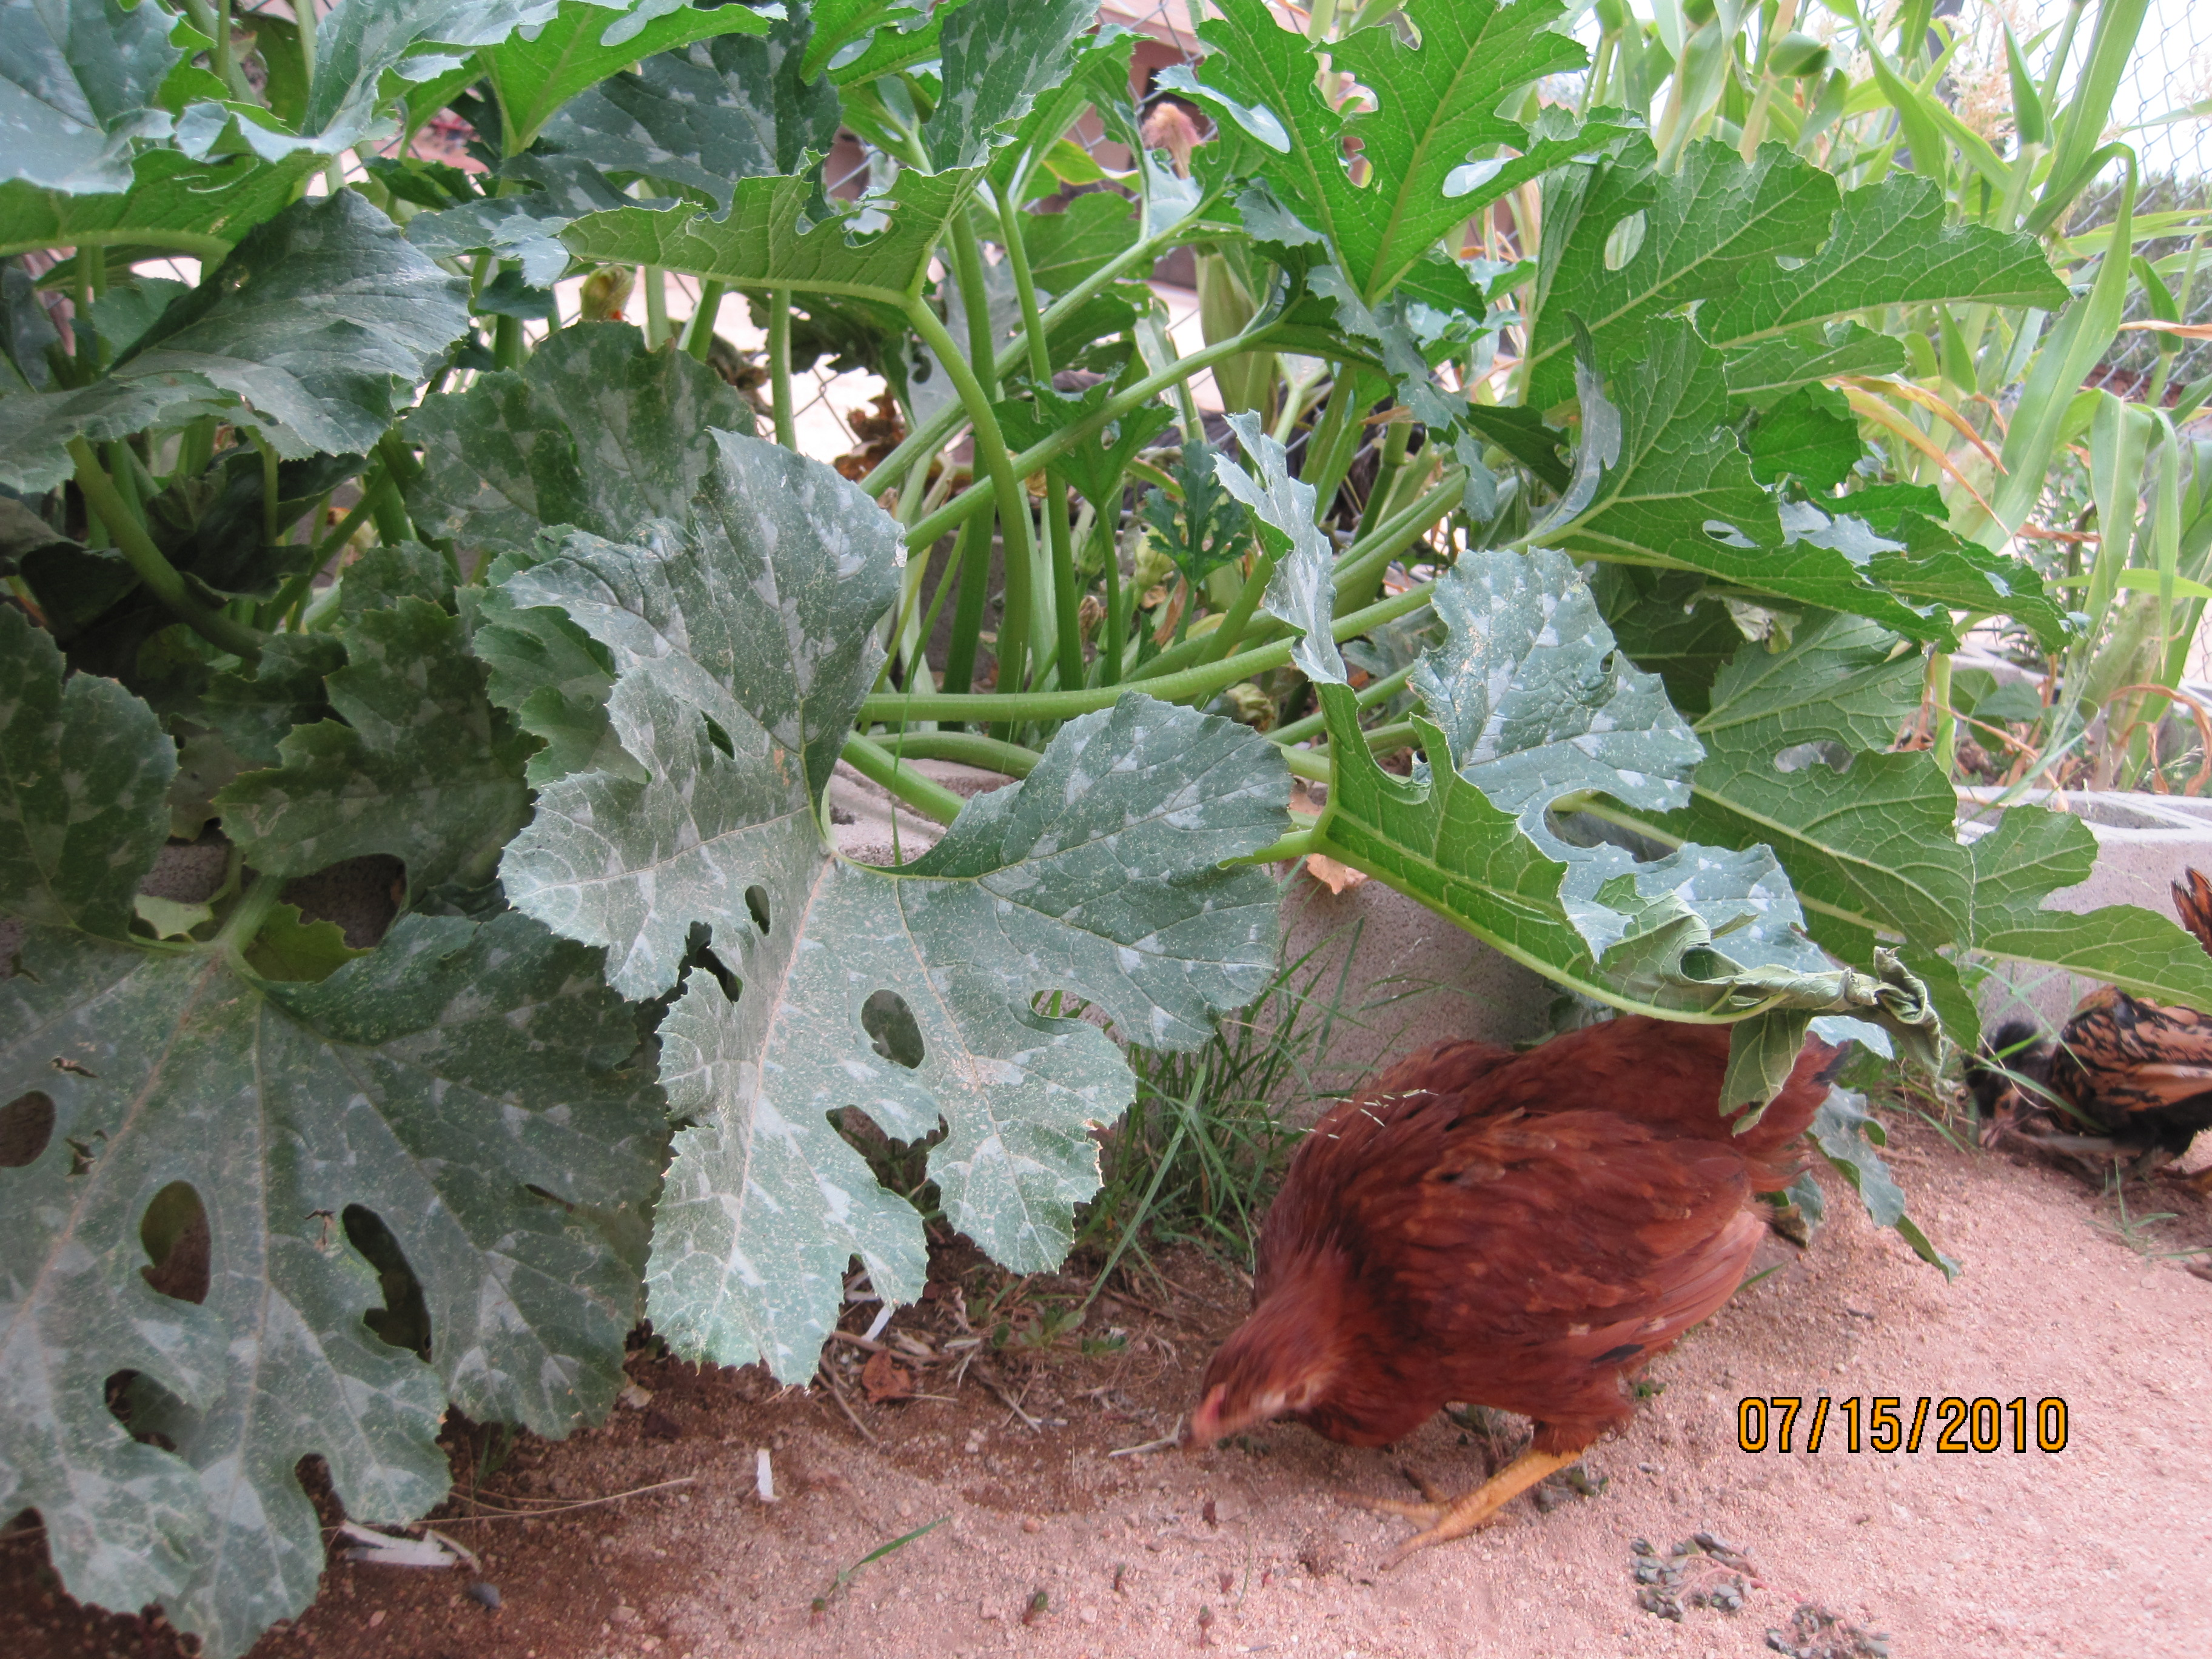 Chickens in the garden